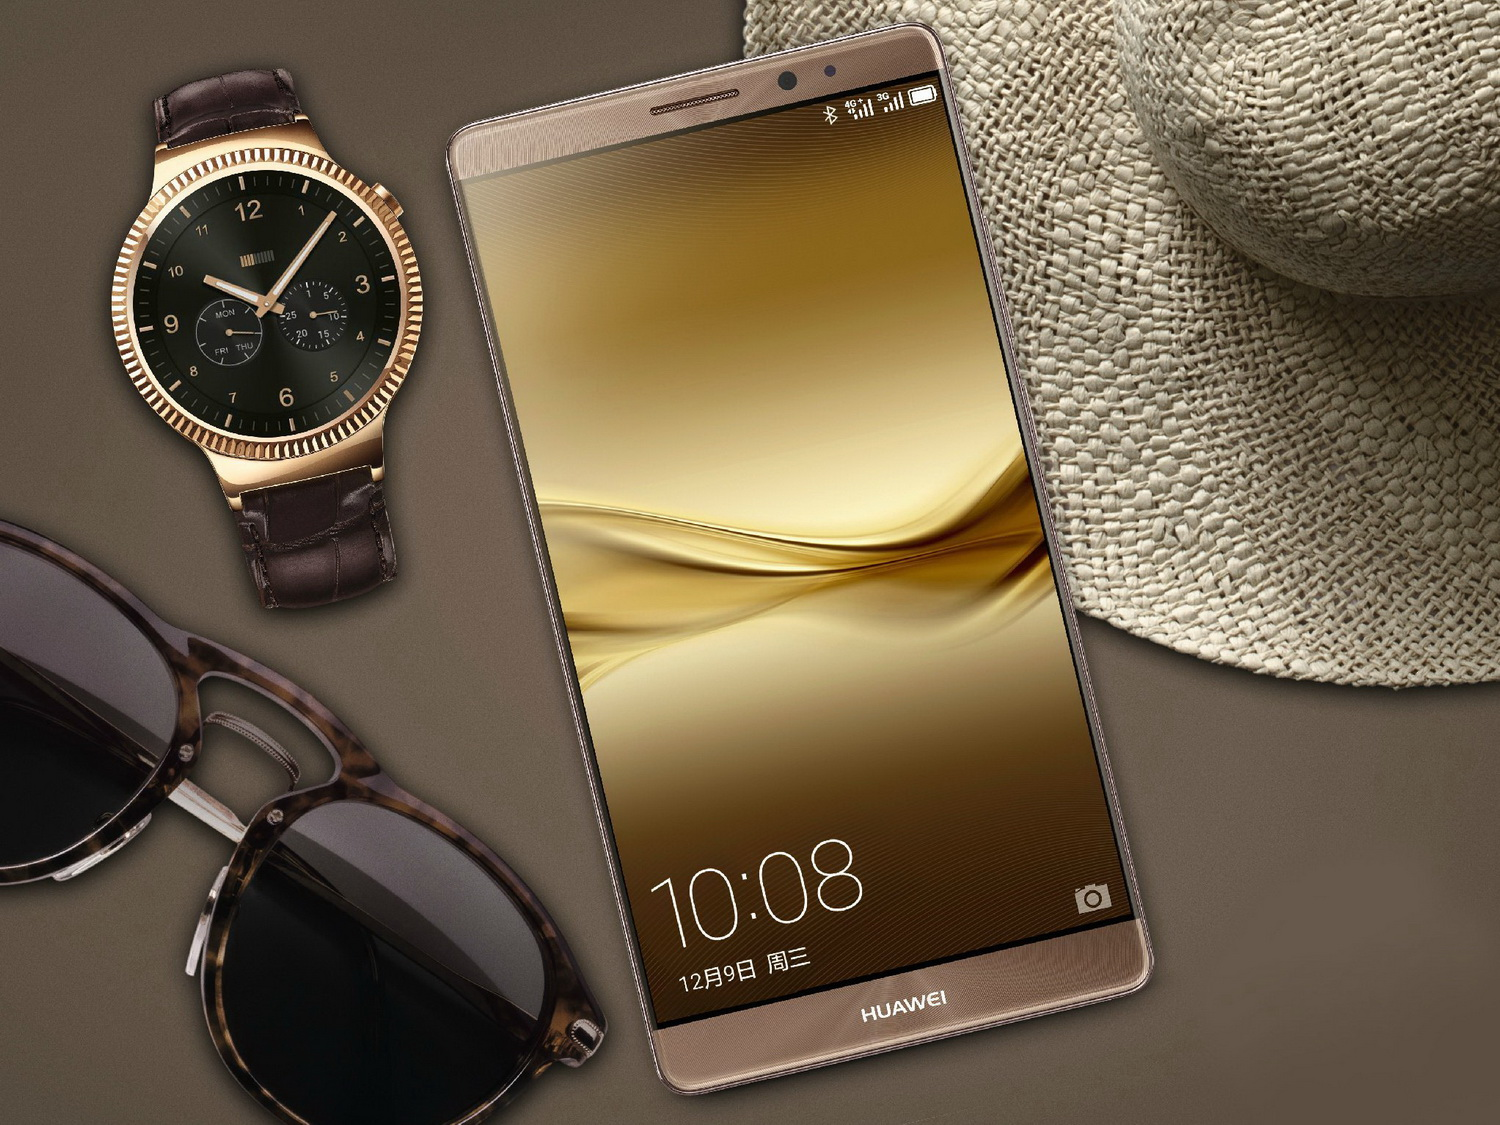 Huawei Mate 8 launches this December 9th in China ...